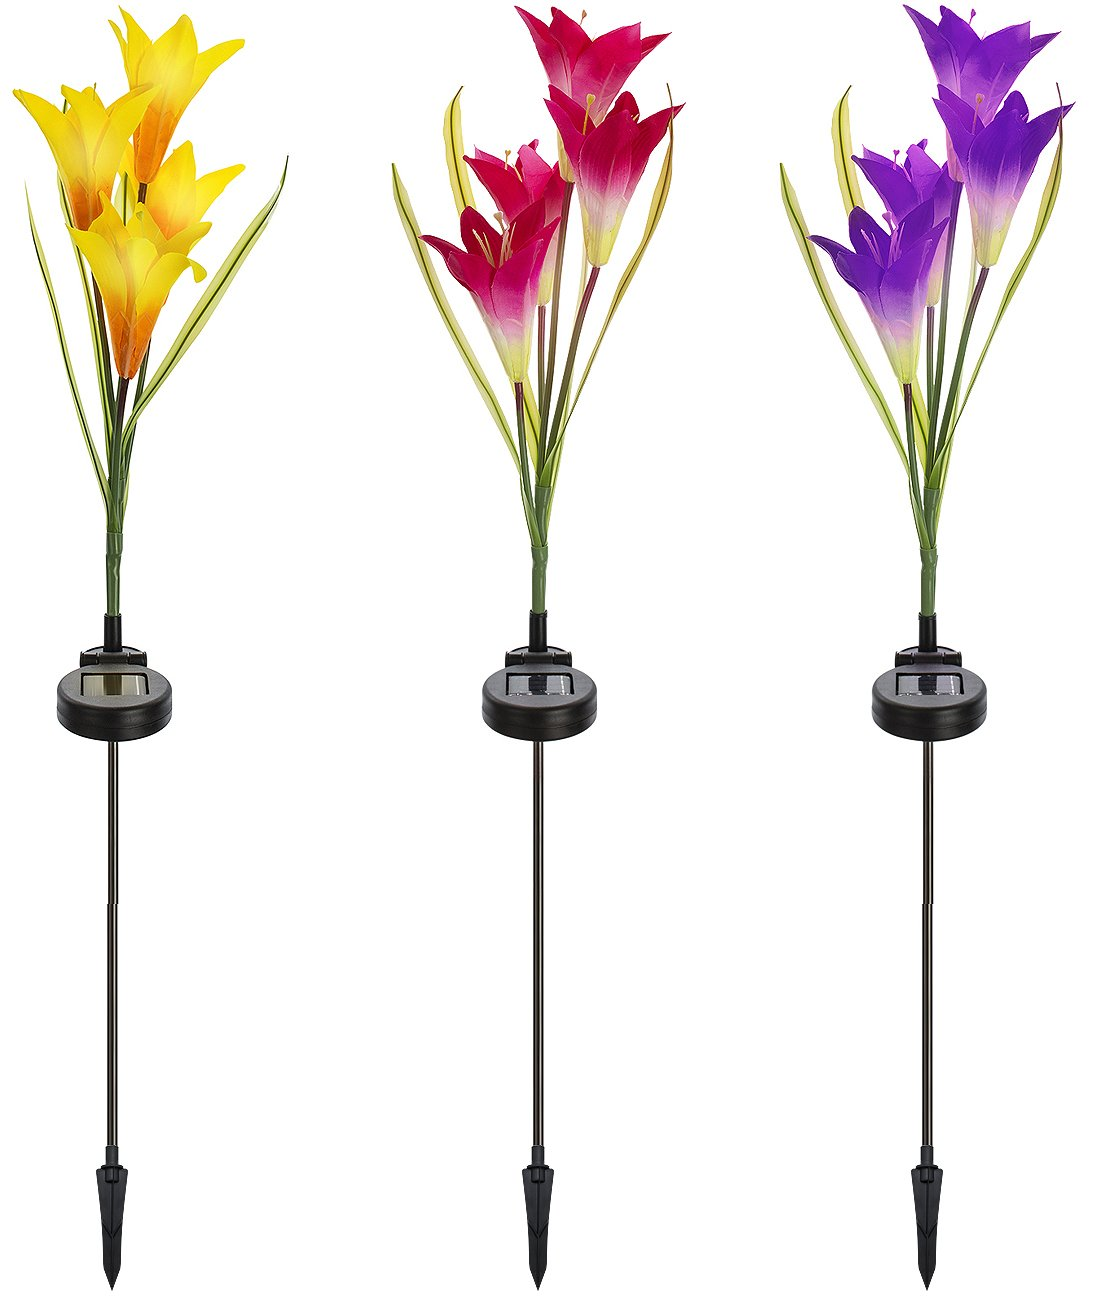 Sorbus-Solar-Light-Flower-Lily-Stakes-Outdoor-LED-Garden-Flowers-for-Night-Lighting-Solar-Path-Walkway-Lawn-Garden-Pond-Patio-Gravestones-Special-Occasions-etc